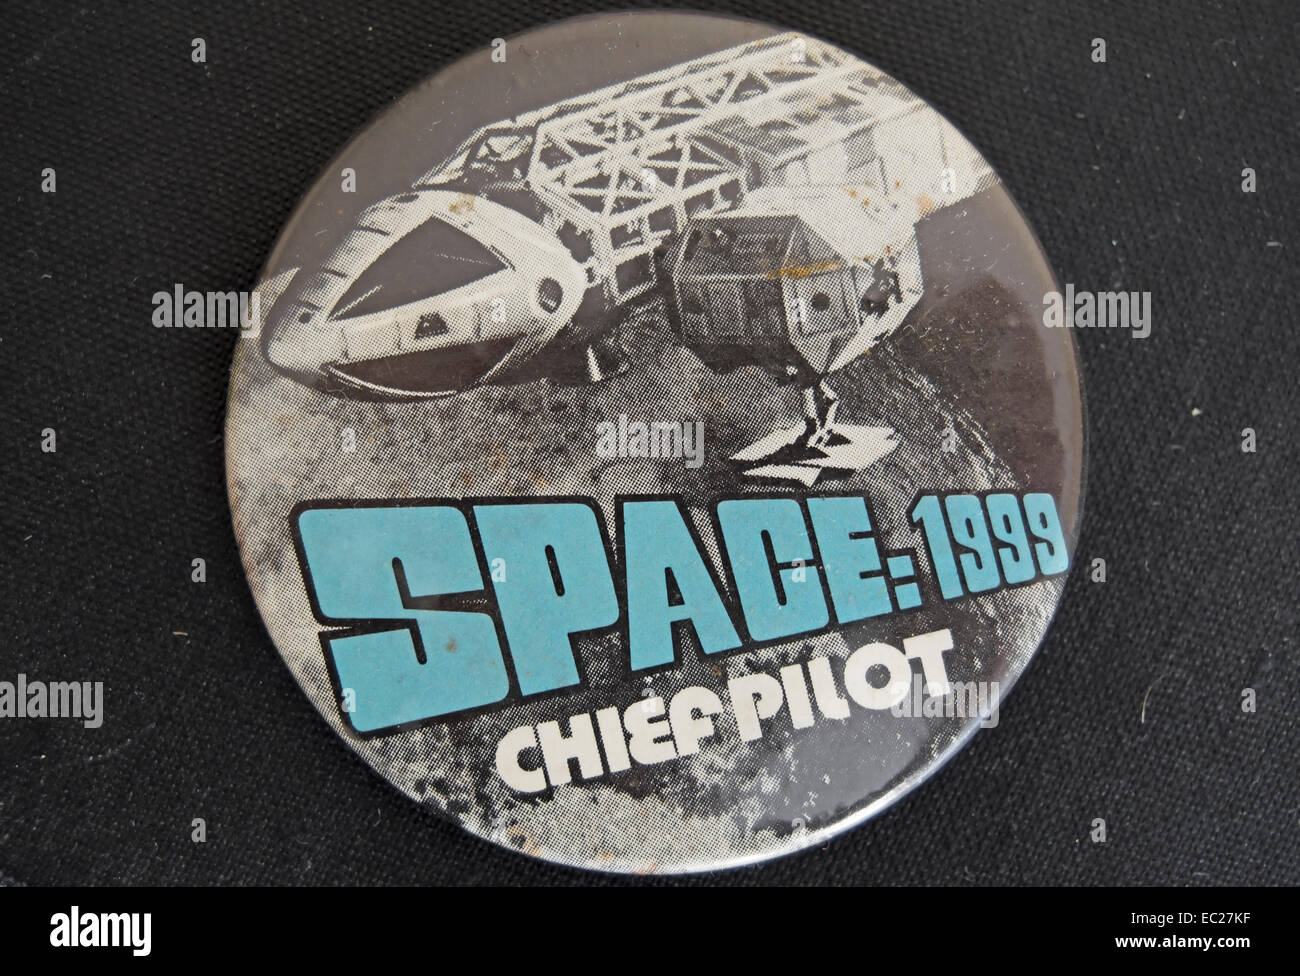 chief pilot lapel badge of the 1970s promoting the tv show, space 1999 - Stock Image